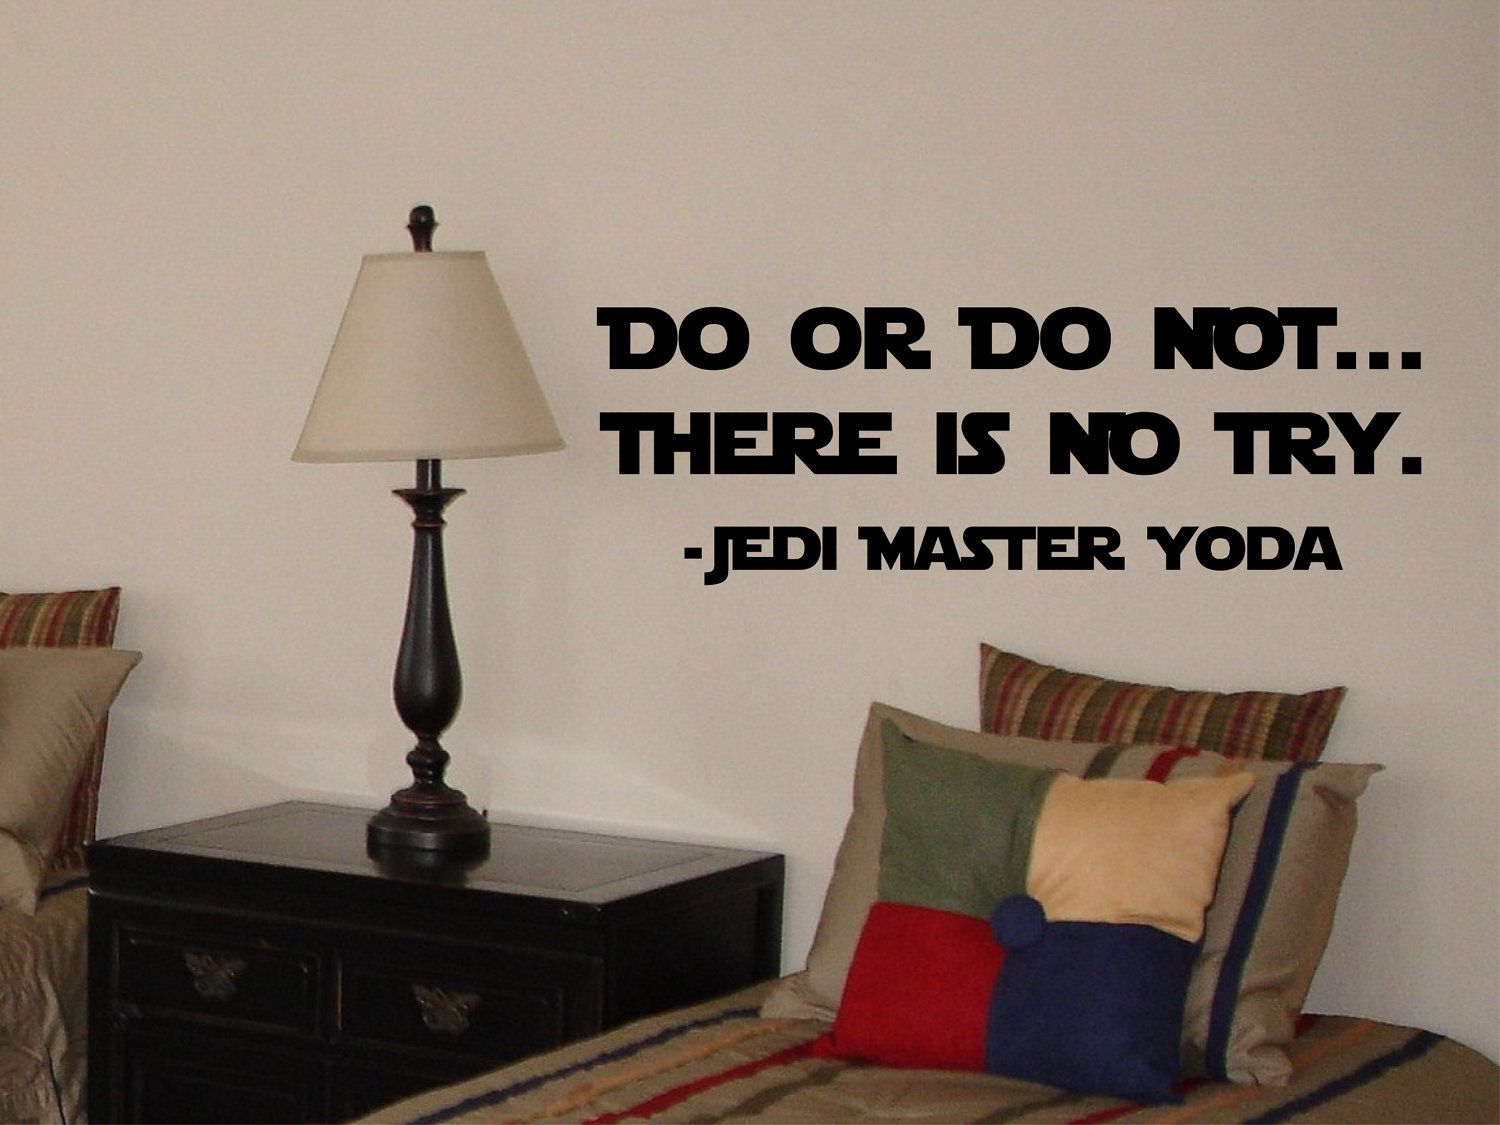 Star Wars Wall Decal Yoda Do OR DO NOT by bushcreative on Etsy & Star Wars Wall Decal Yoda Do OR DO NOT by bushcreative on Etsy ...